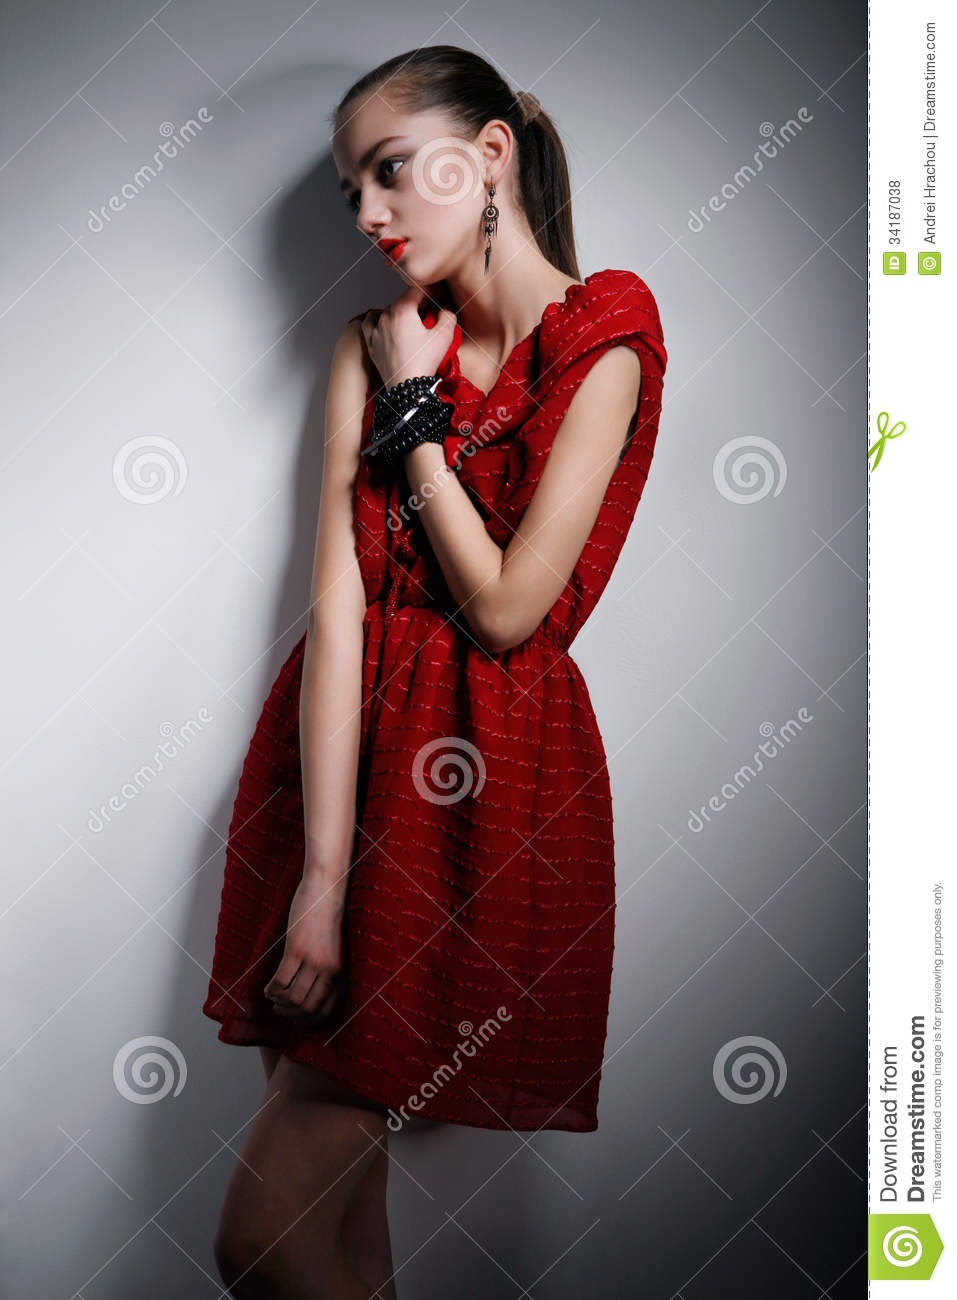 Creative Beauty Woman Holds Dress And Looks Up Royalty Free Stock Photography